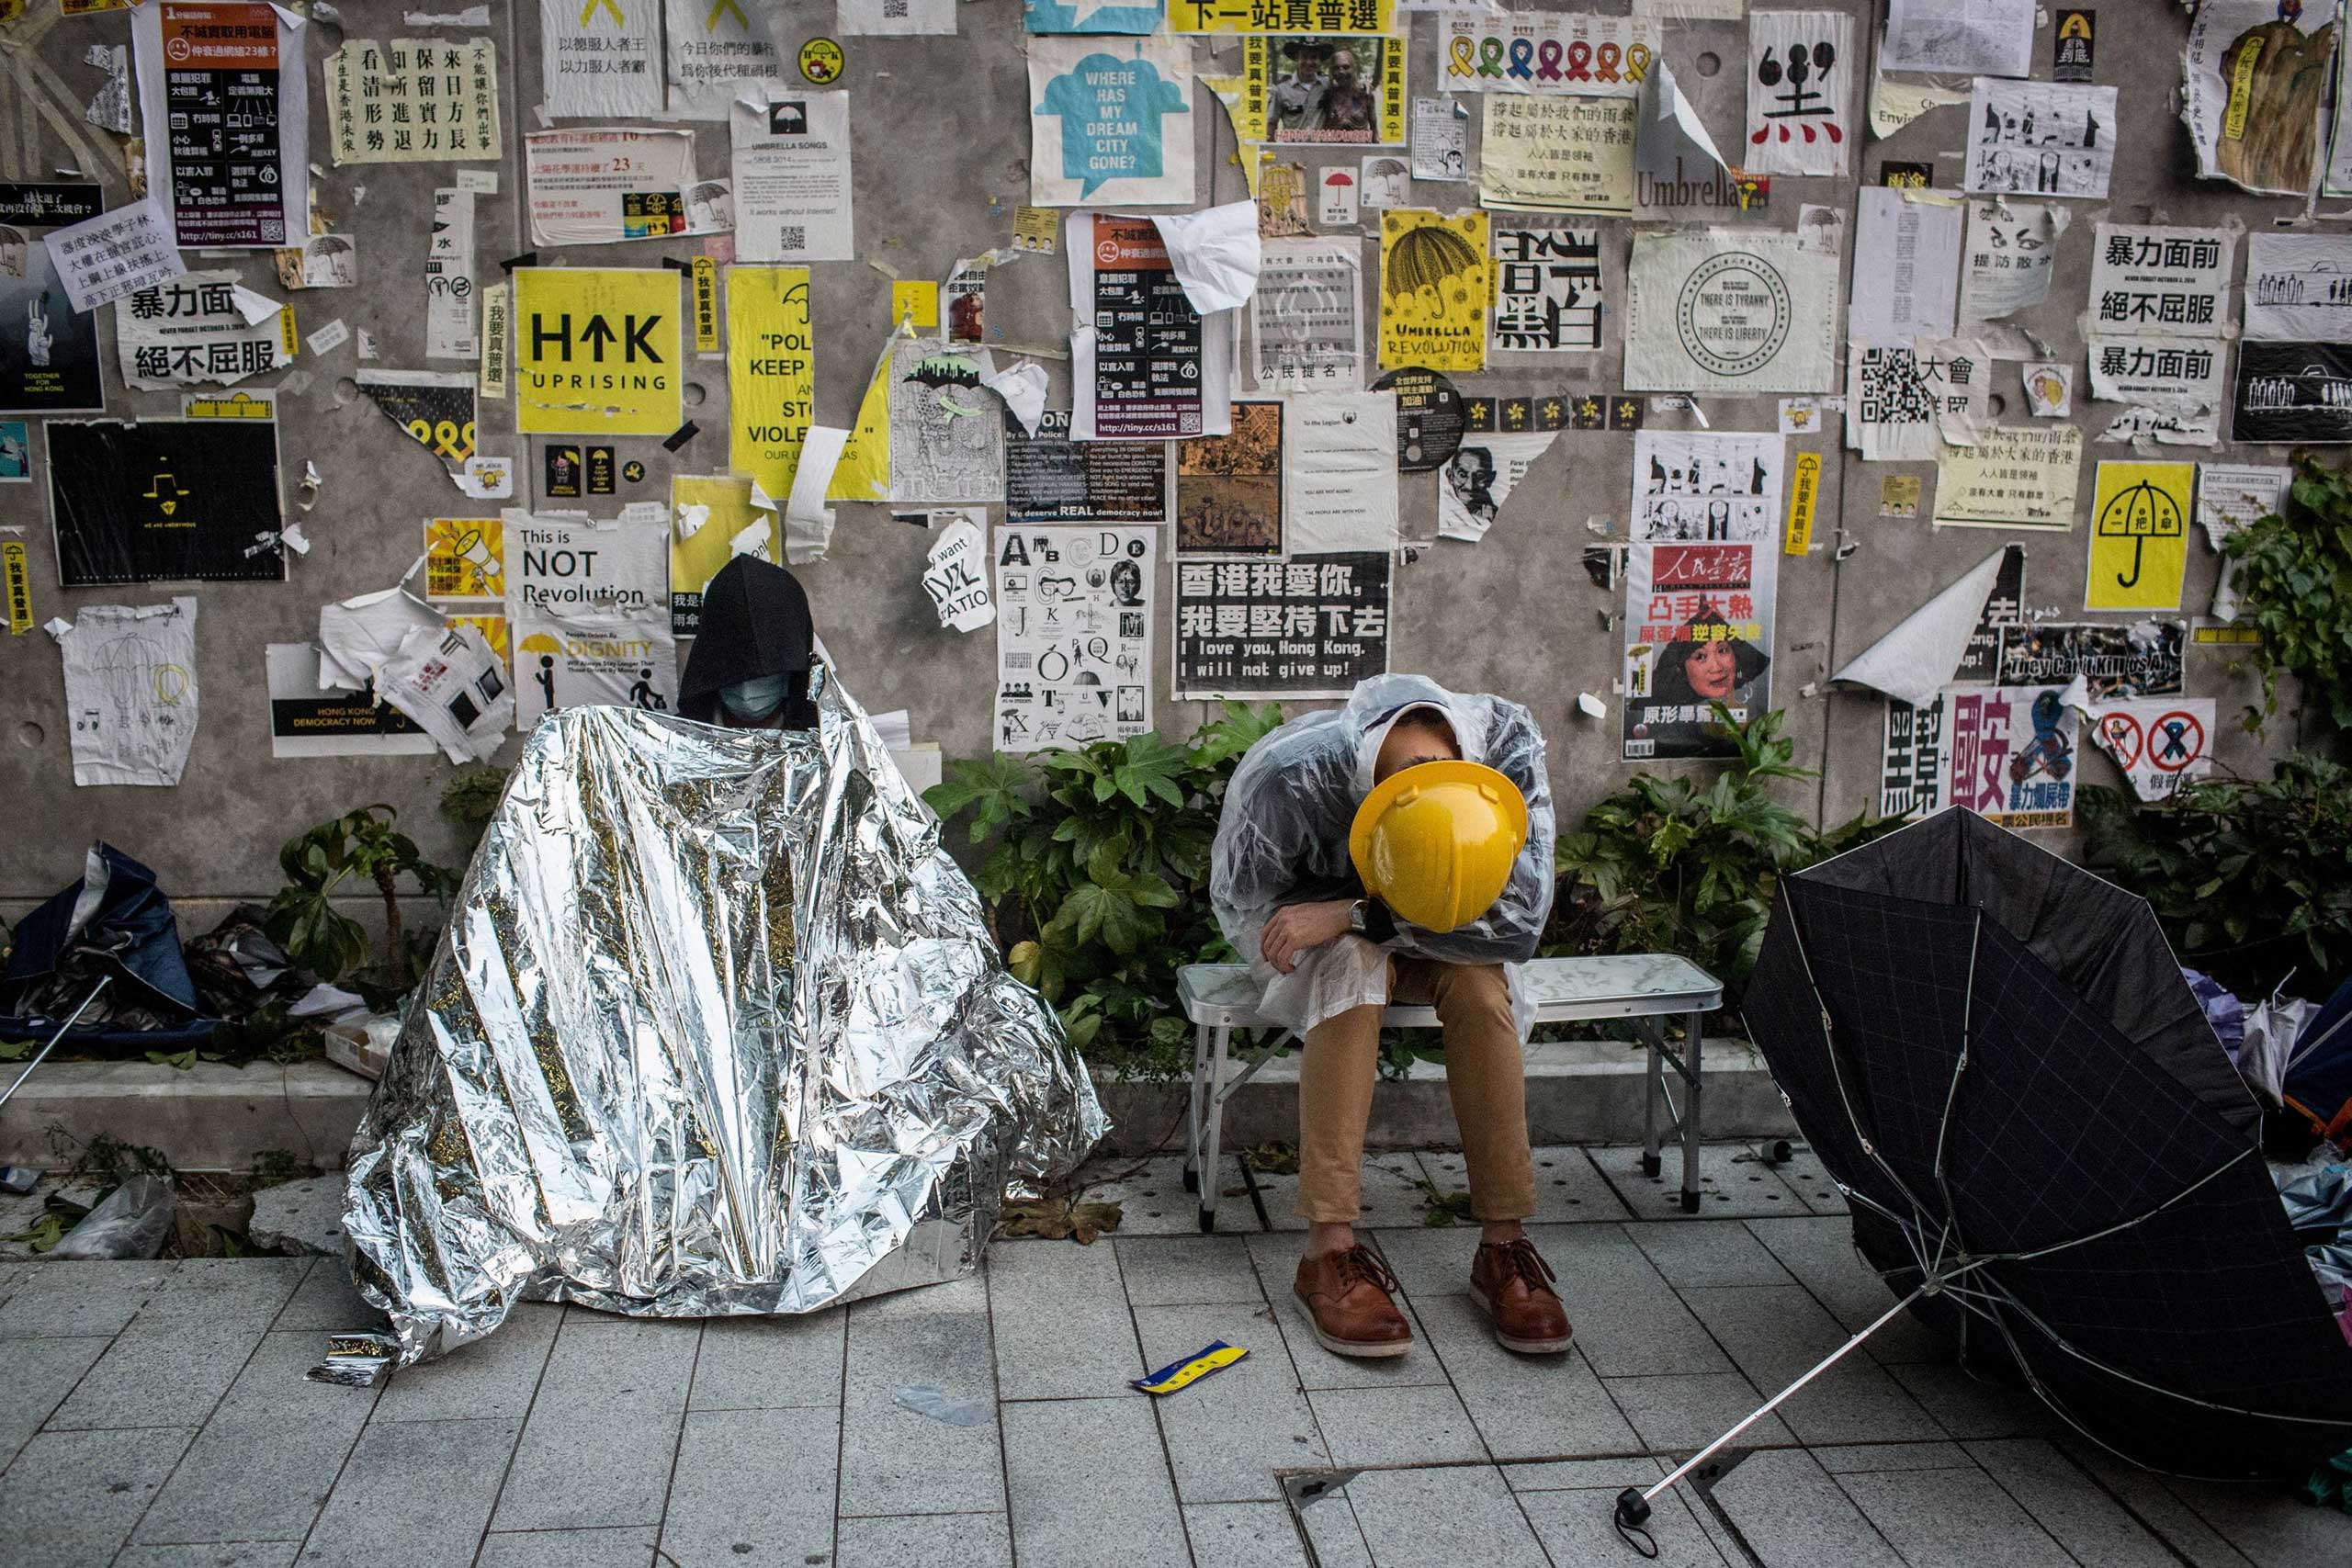 Pro-democracy activists sleep outside the Legislative Council building after protesters clashed with police on Nov. 19, 2014 in Hong Kong.